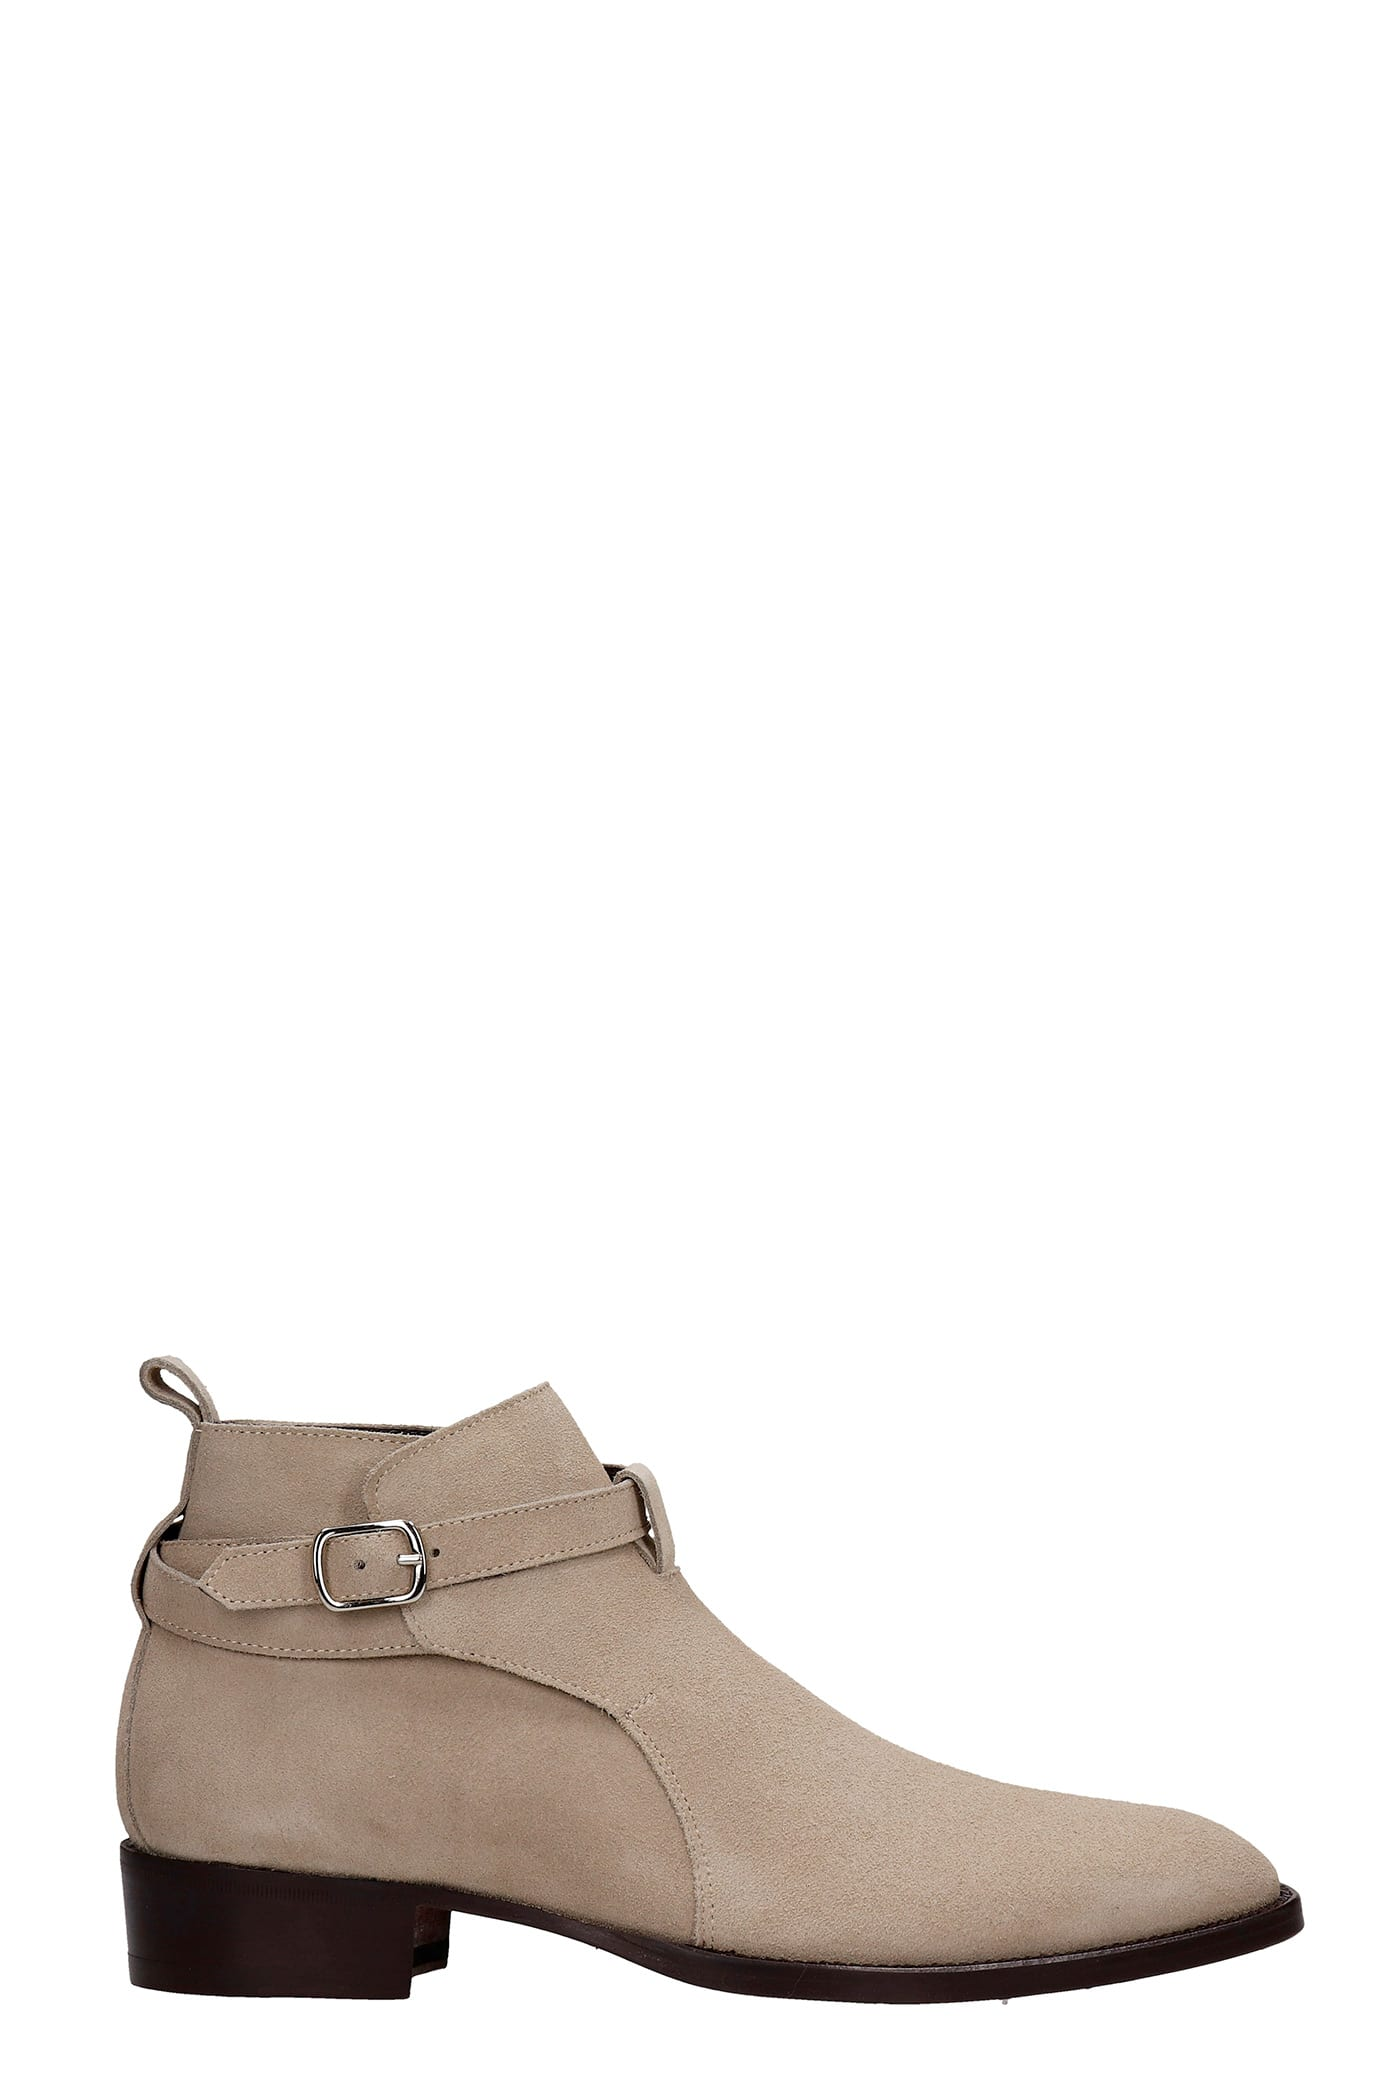 Low Heels Ankle Boots In Grey Suede